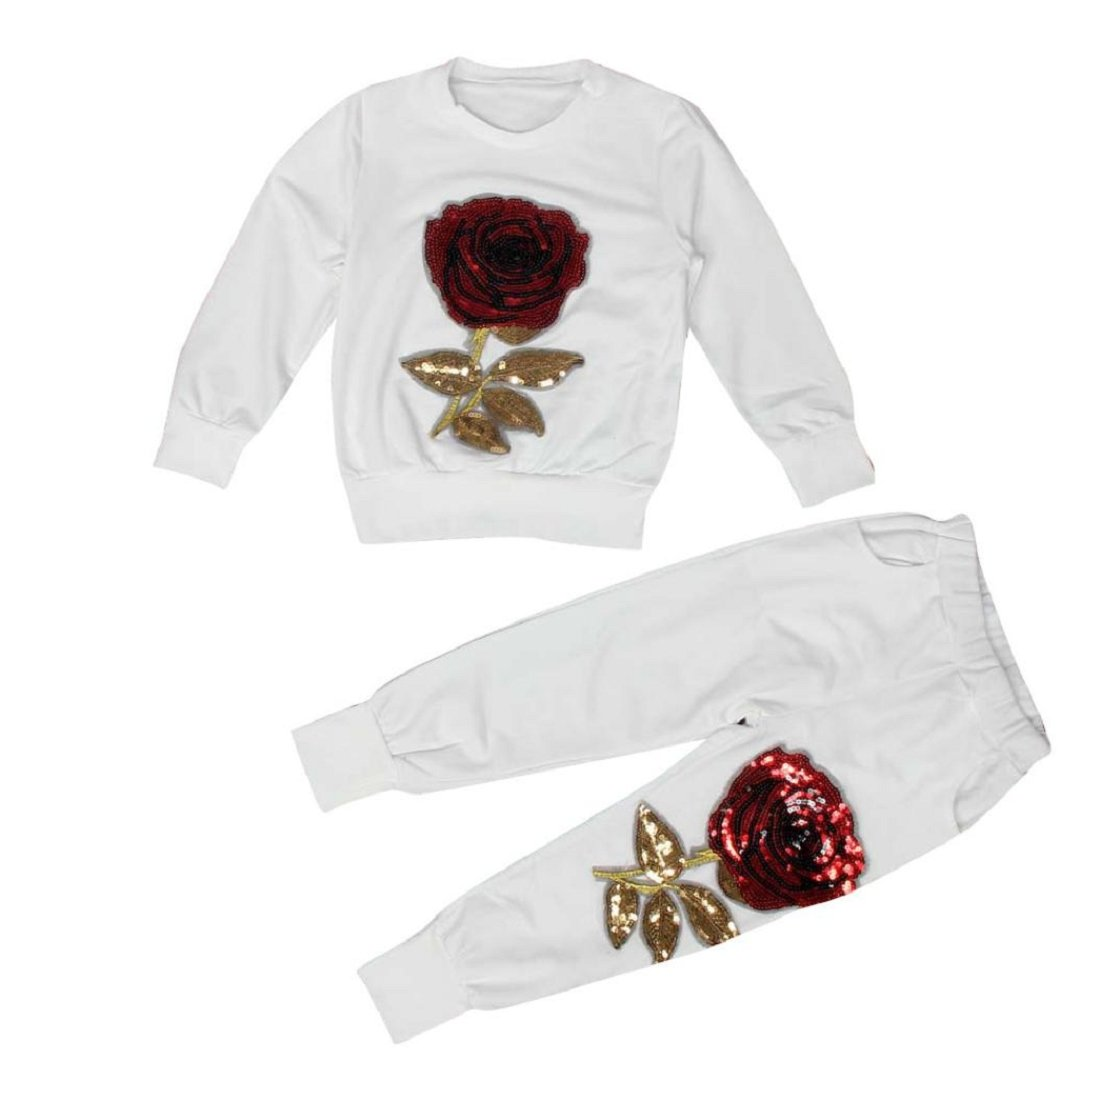 GONKOMA Kids Girls Rose Embroider T-Shirt Tops+Pants Outfits Children Clothes